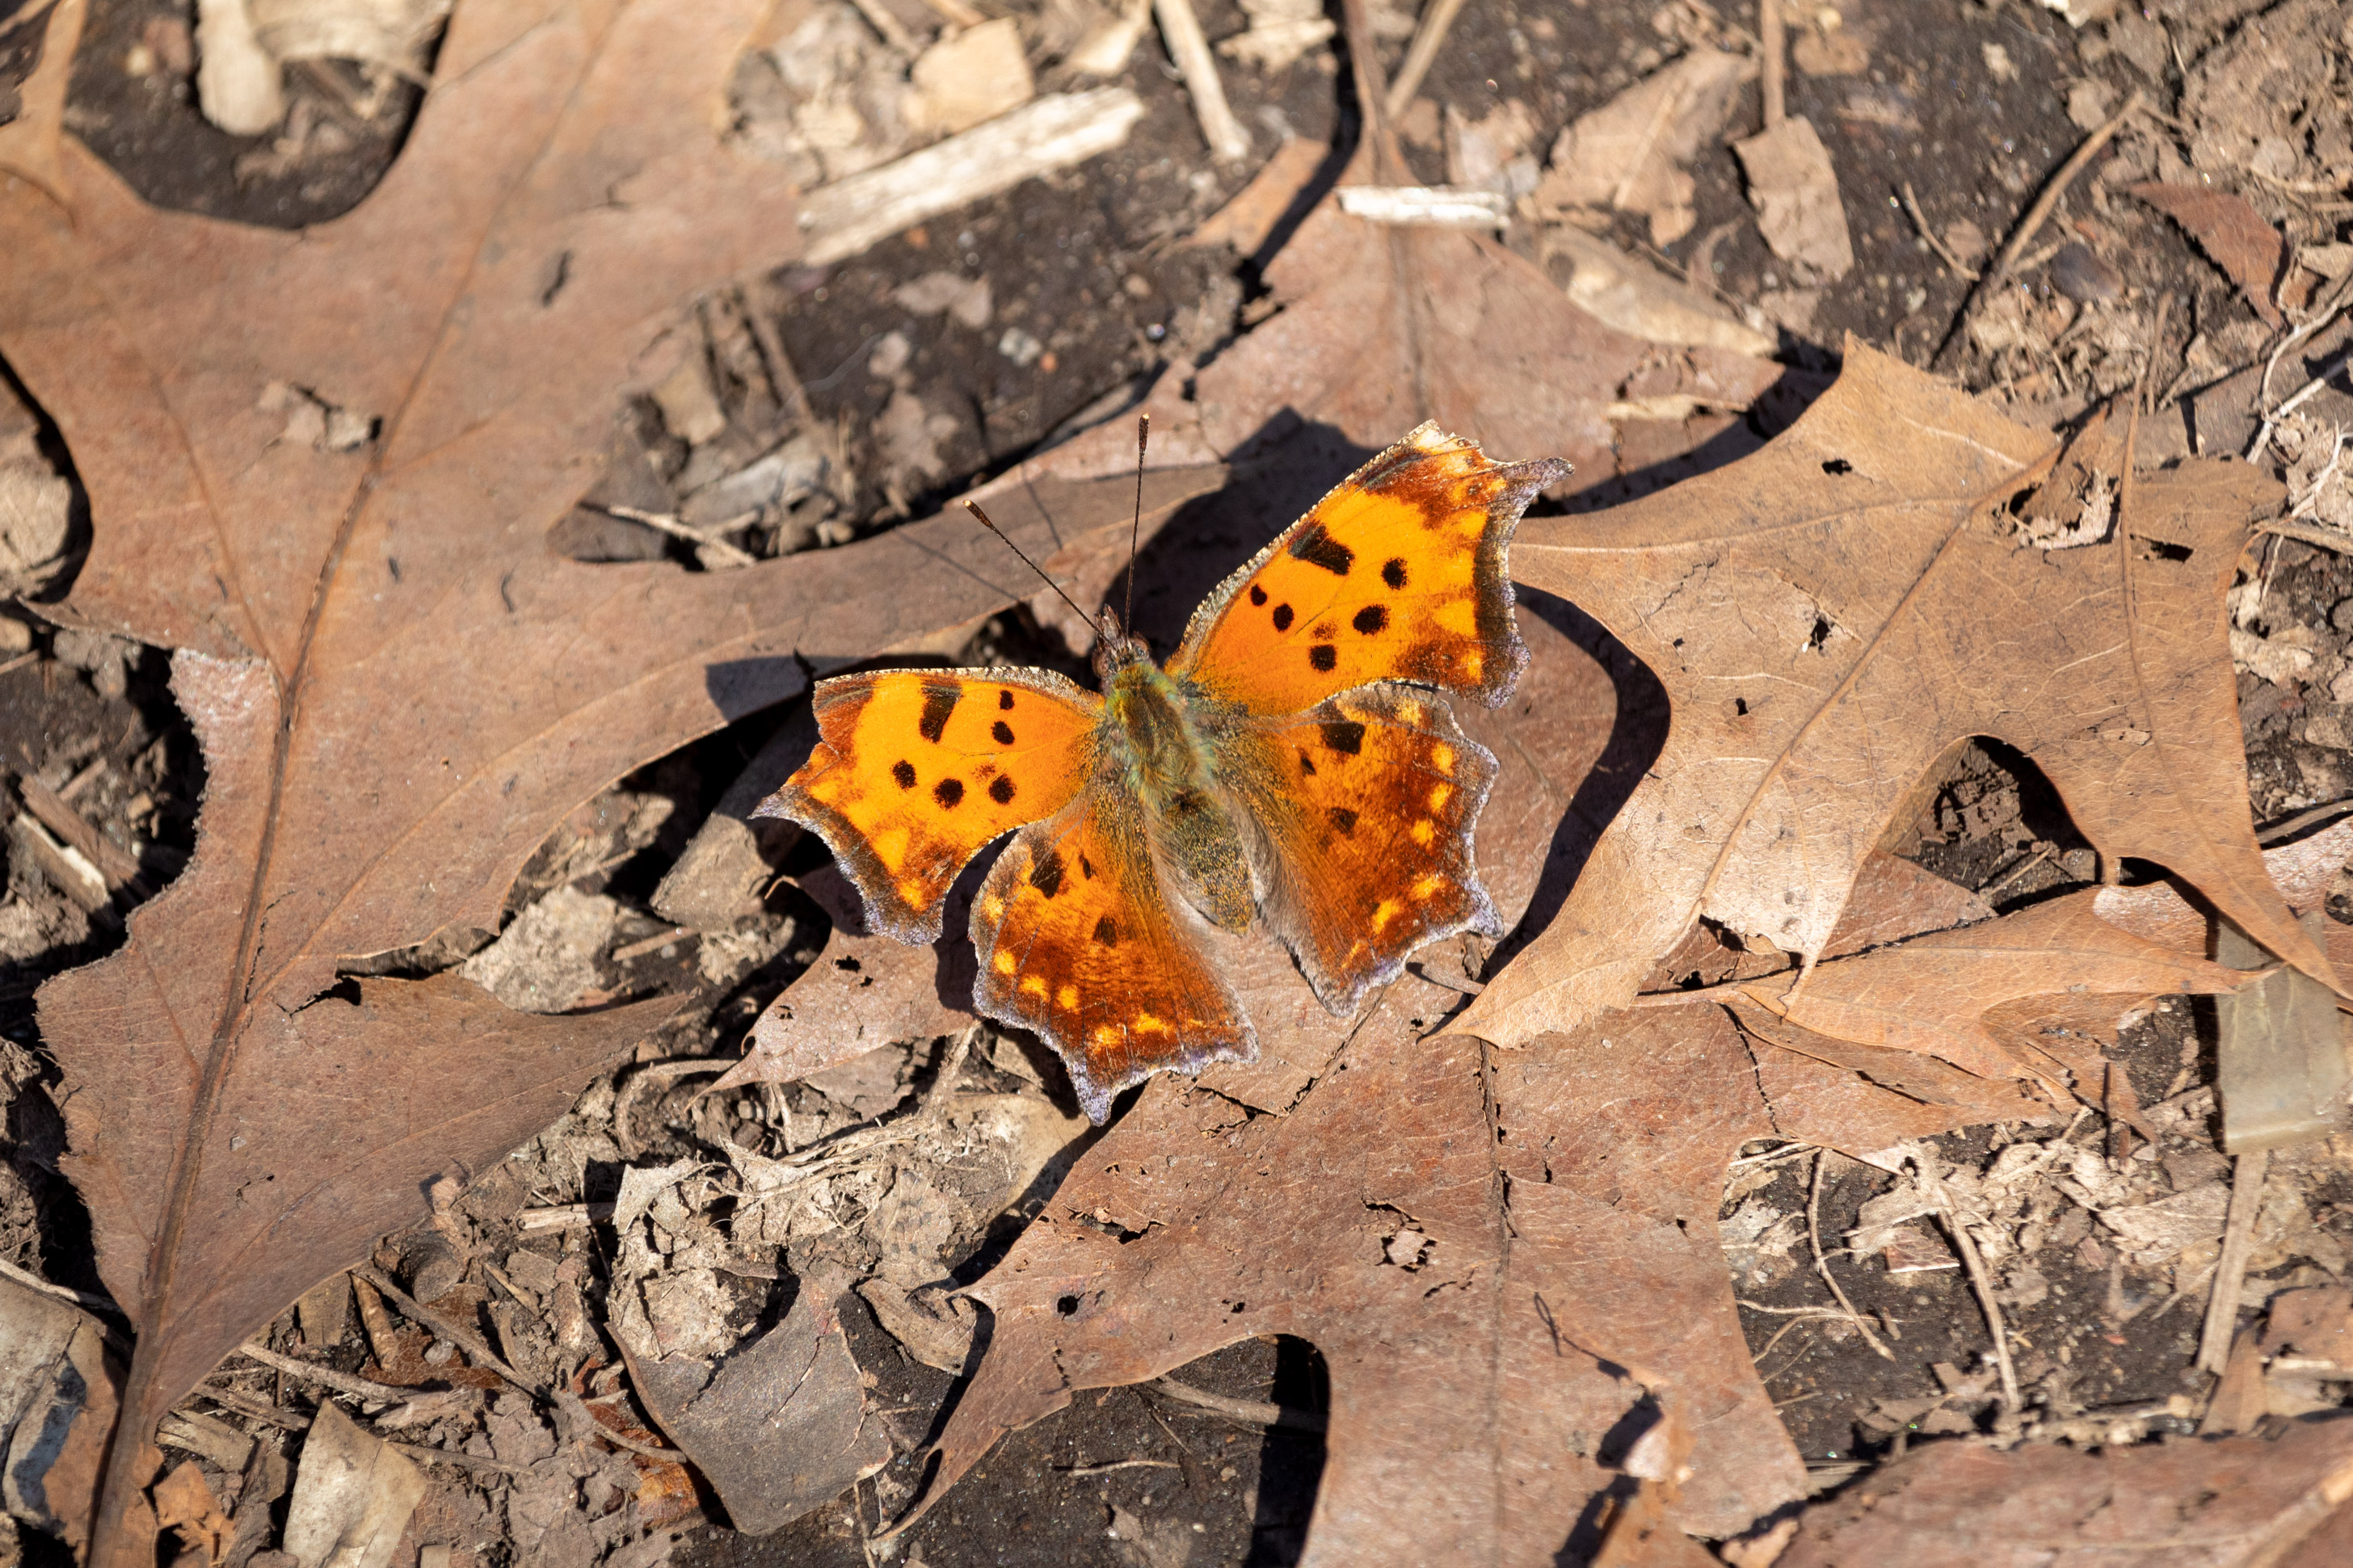 Fuzzy orange butterfly with black spots sitting on the leaf-covered ground